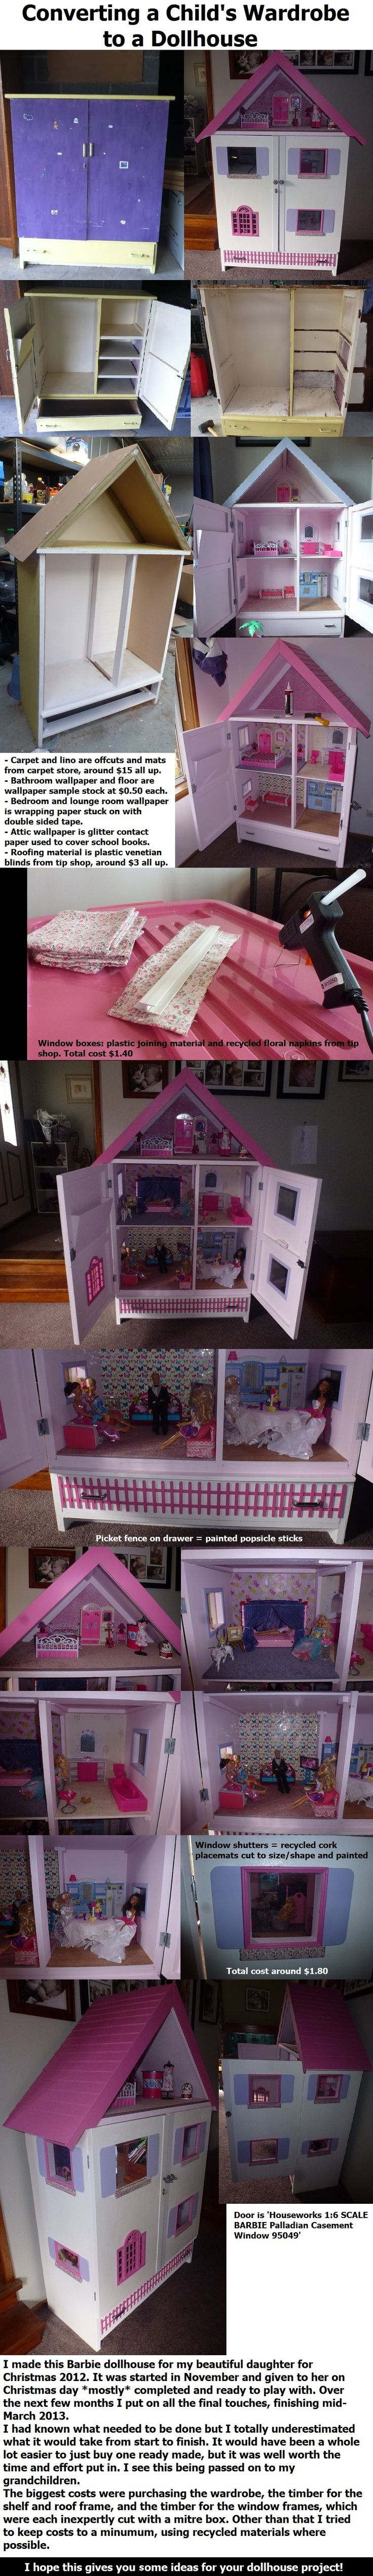 Converting a child's wardrobe/armoire to a Barbie dollhouse. Includes DIY ideas for shutters, window boxes, wallpaper, flooring, picket fence, roof, roofing materials/shingles, decor etc. # Barbie Dollhouse # Armoire dollhouse # DIY dollhouse